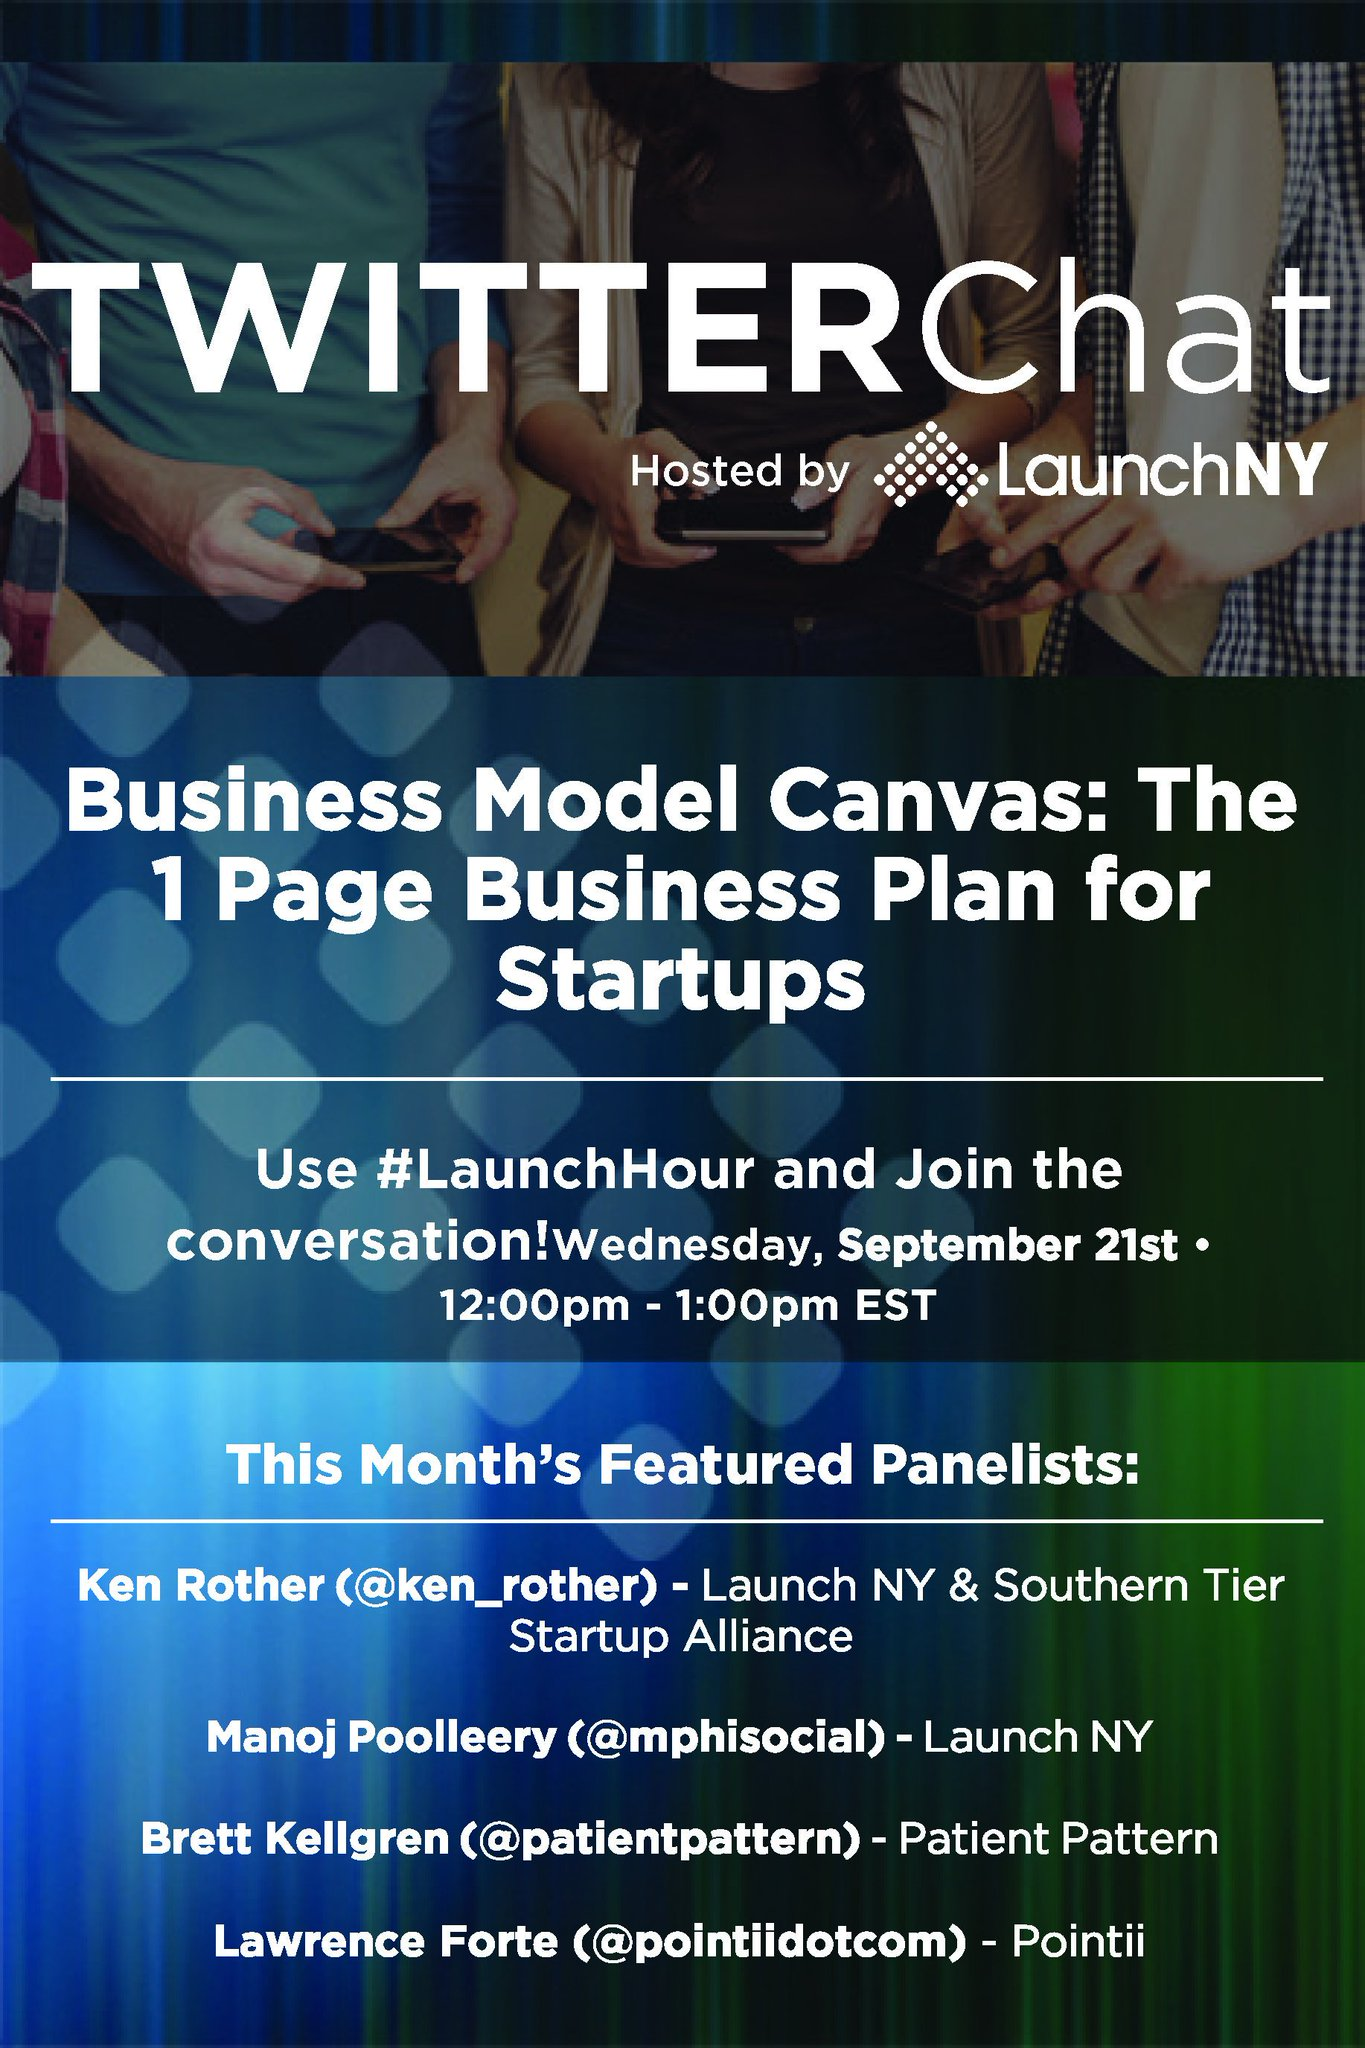 We hope everyone can join us again this month! #LaunchHour https://t.co/iswXvUFs9V